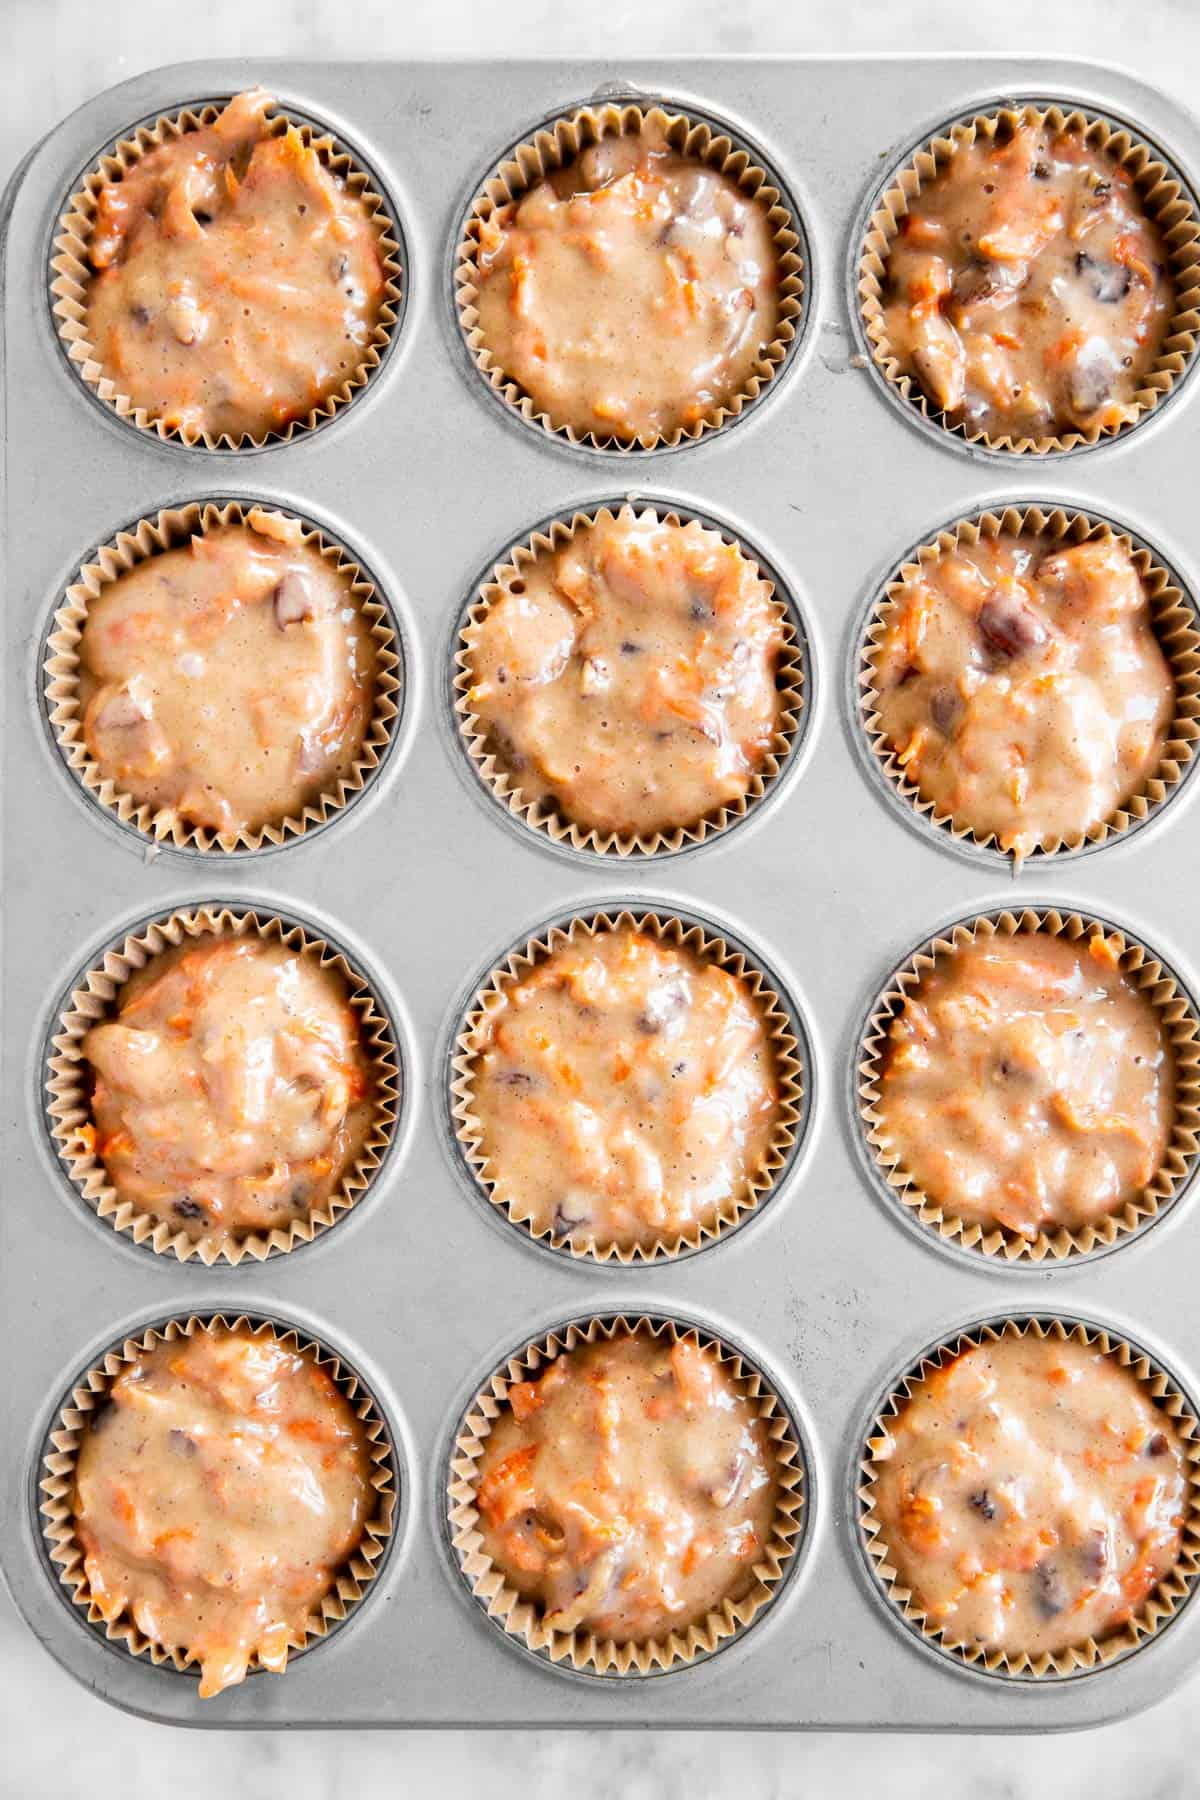 carrot muffin batter divided between 12 lined muffin cups